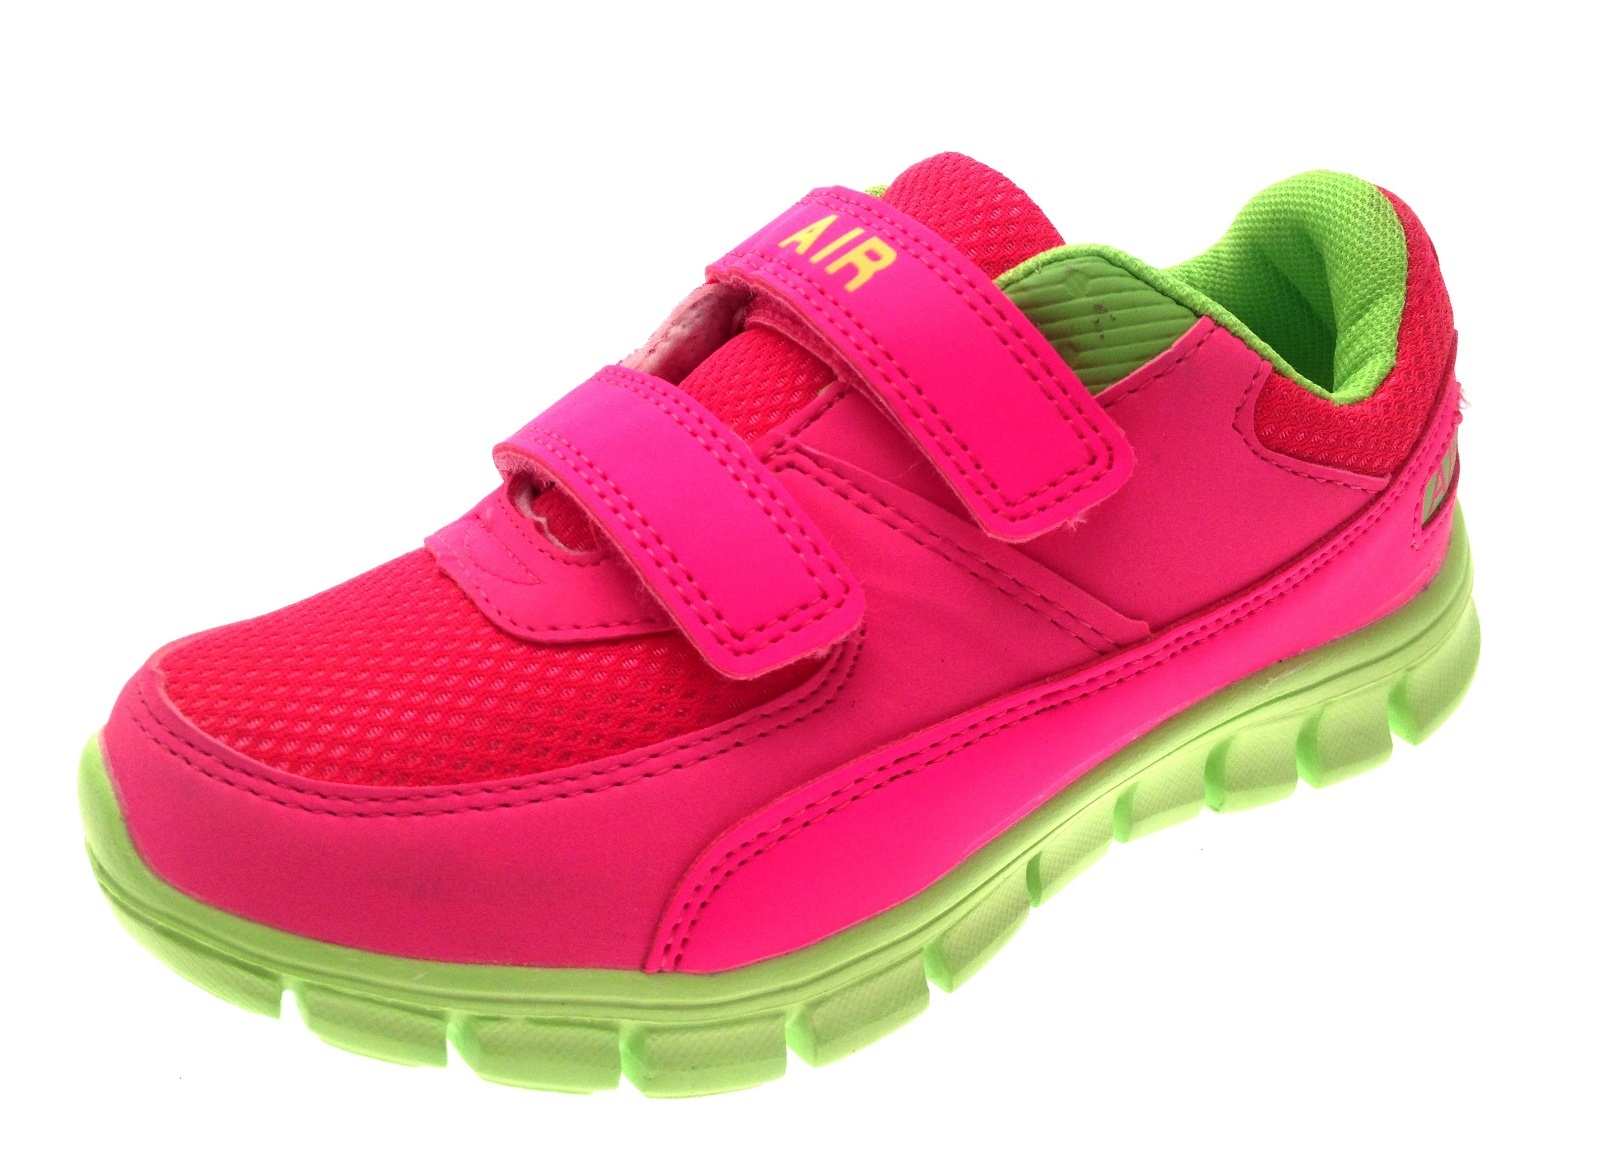 9ce9f4b1d41 Details about Kids Boys Girls Sports Trainers School Pumps Flat Running  Shoes Size UK 10 to 2